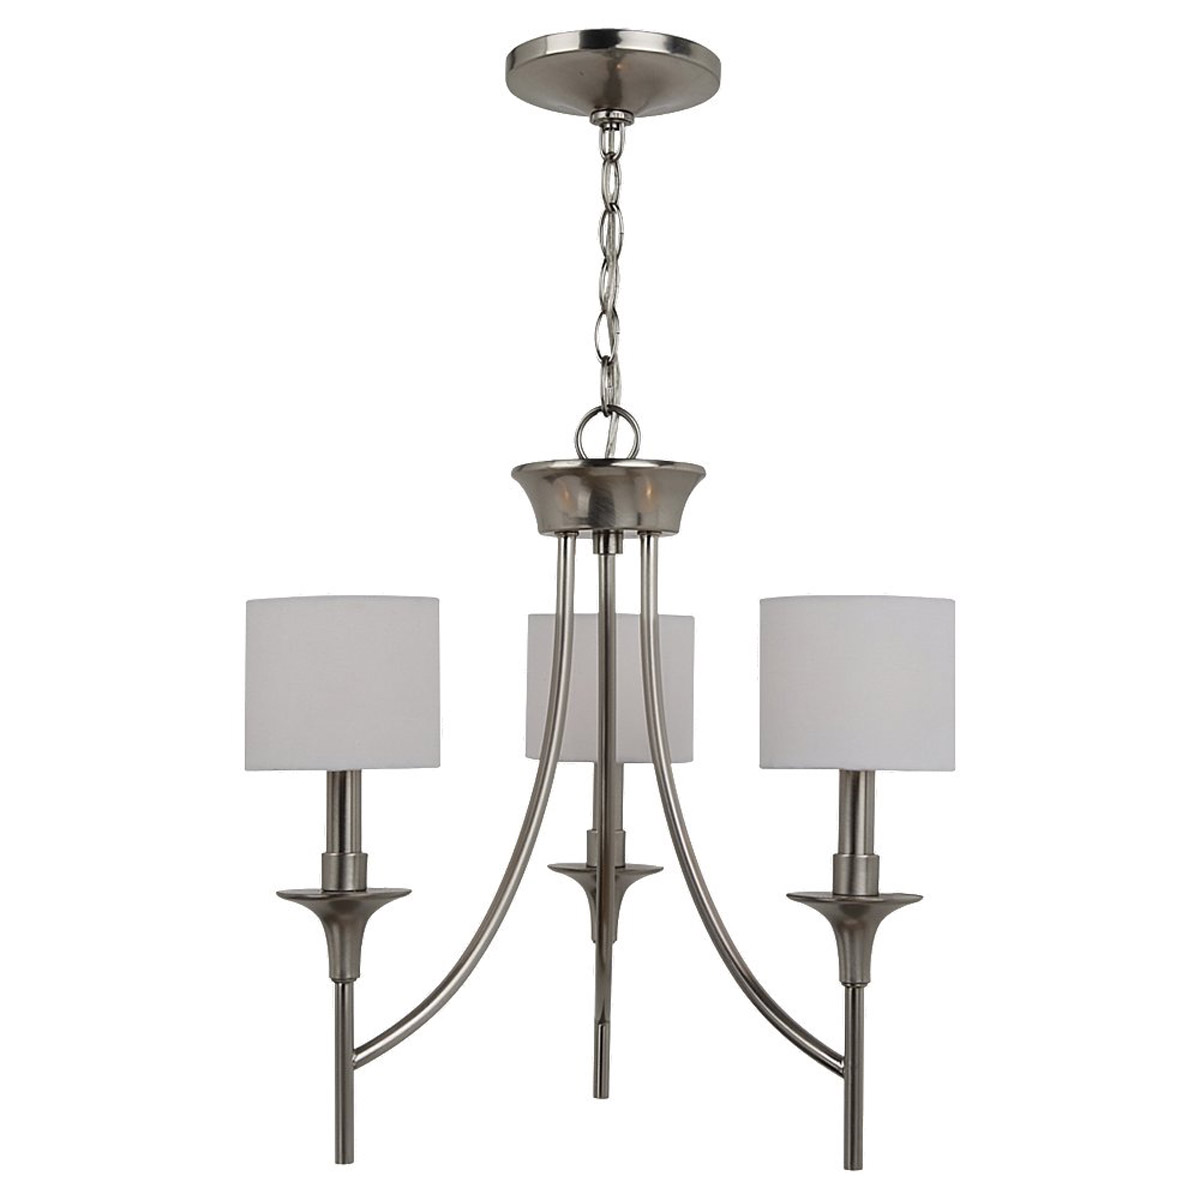 Sea Gull Lighting Stirling 3 Light Chandelier in Brushed Nickel 31932-962